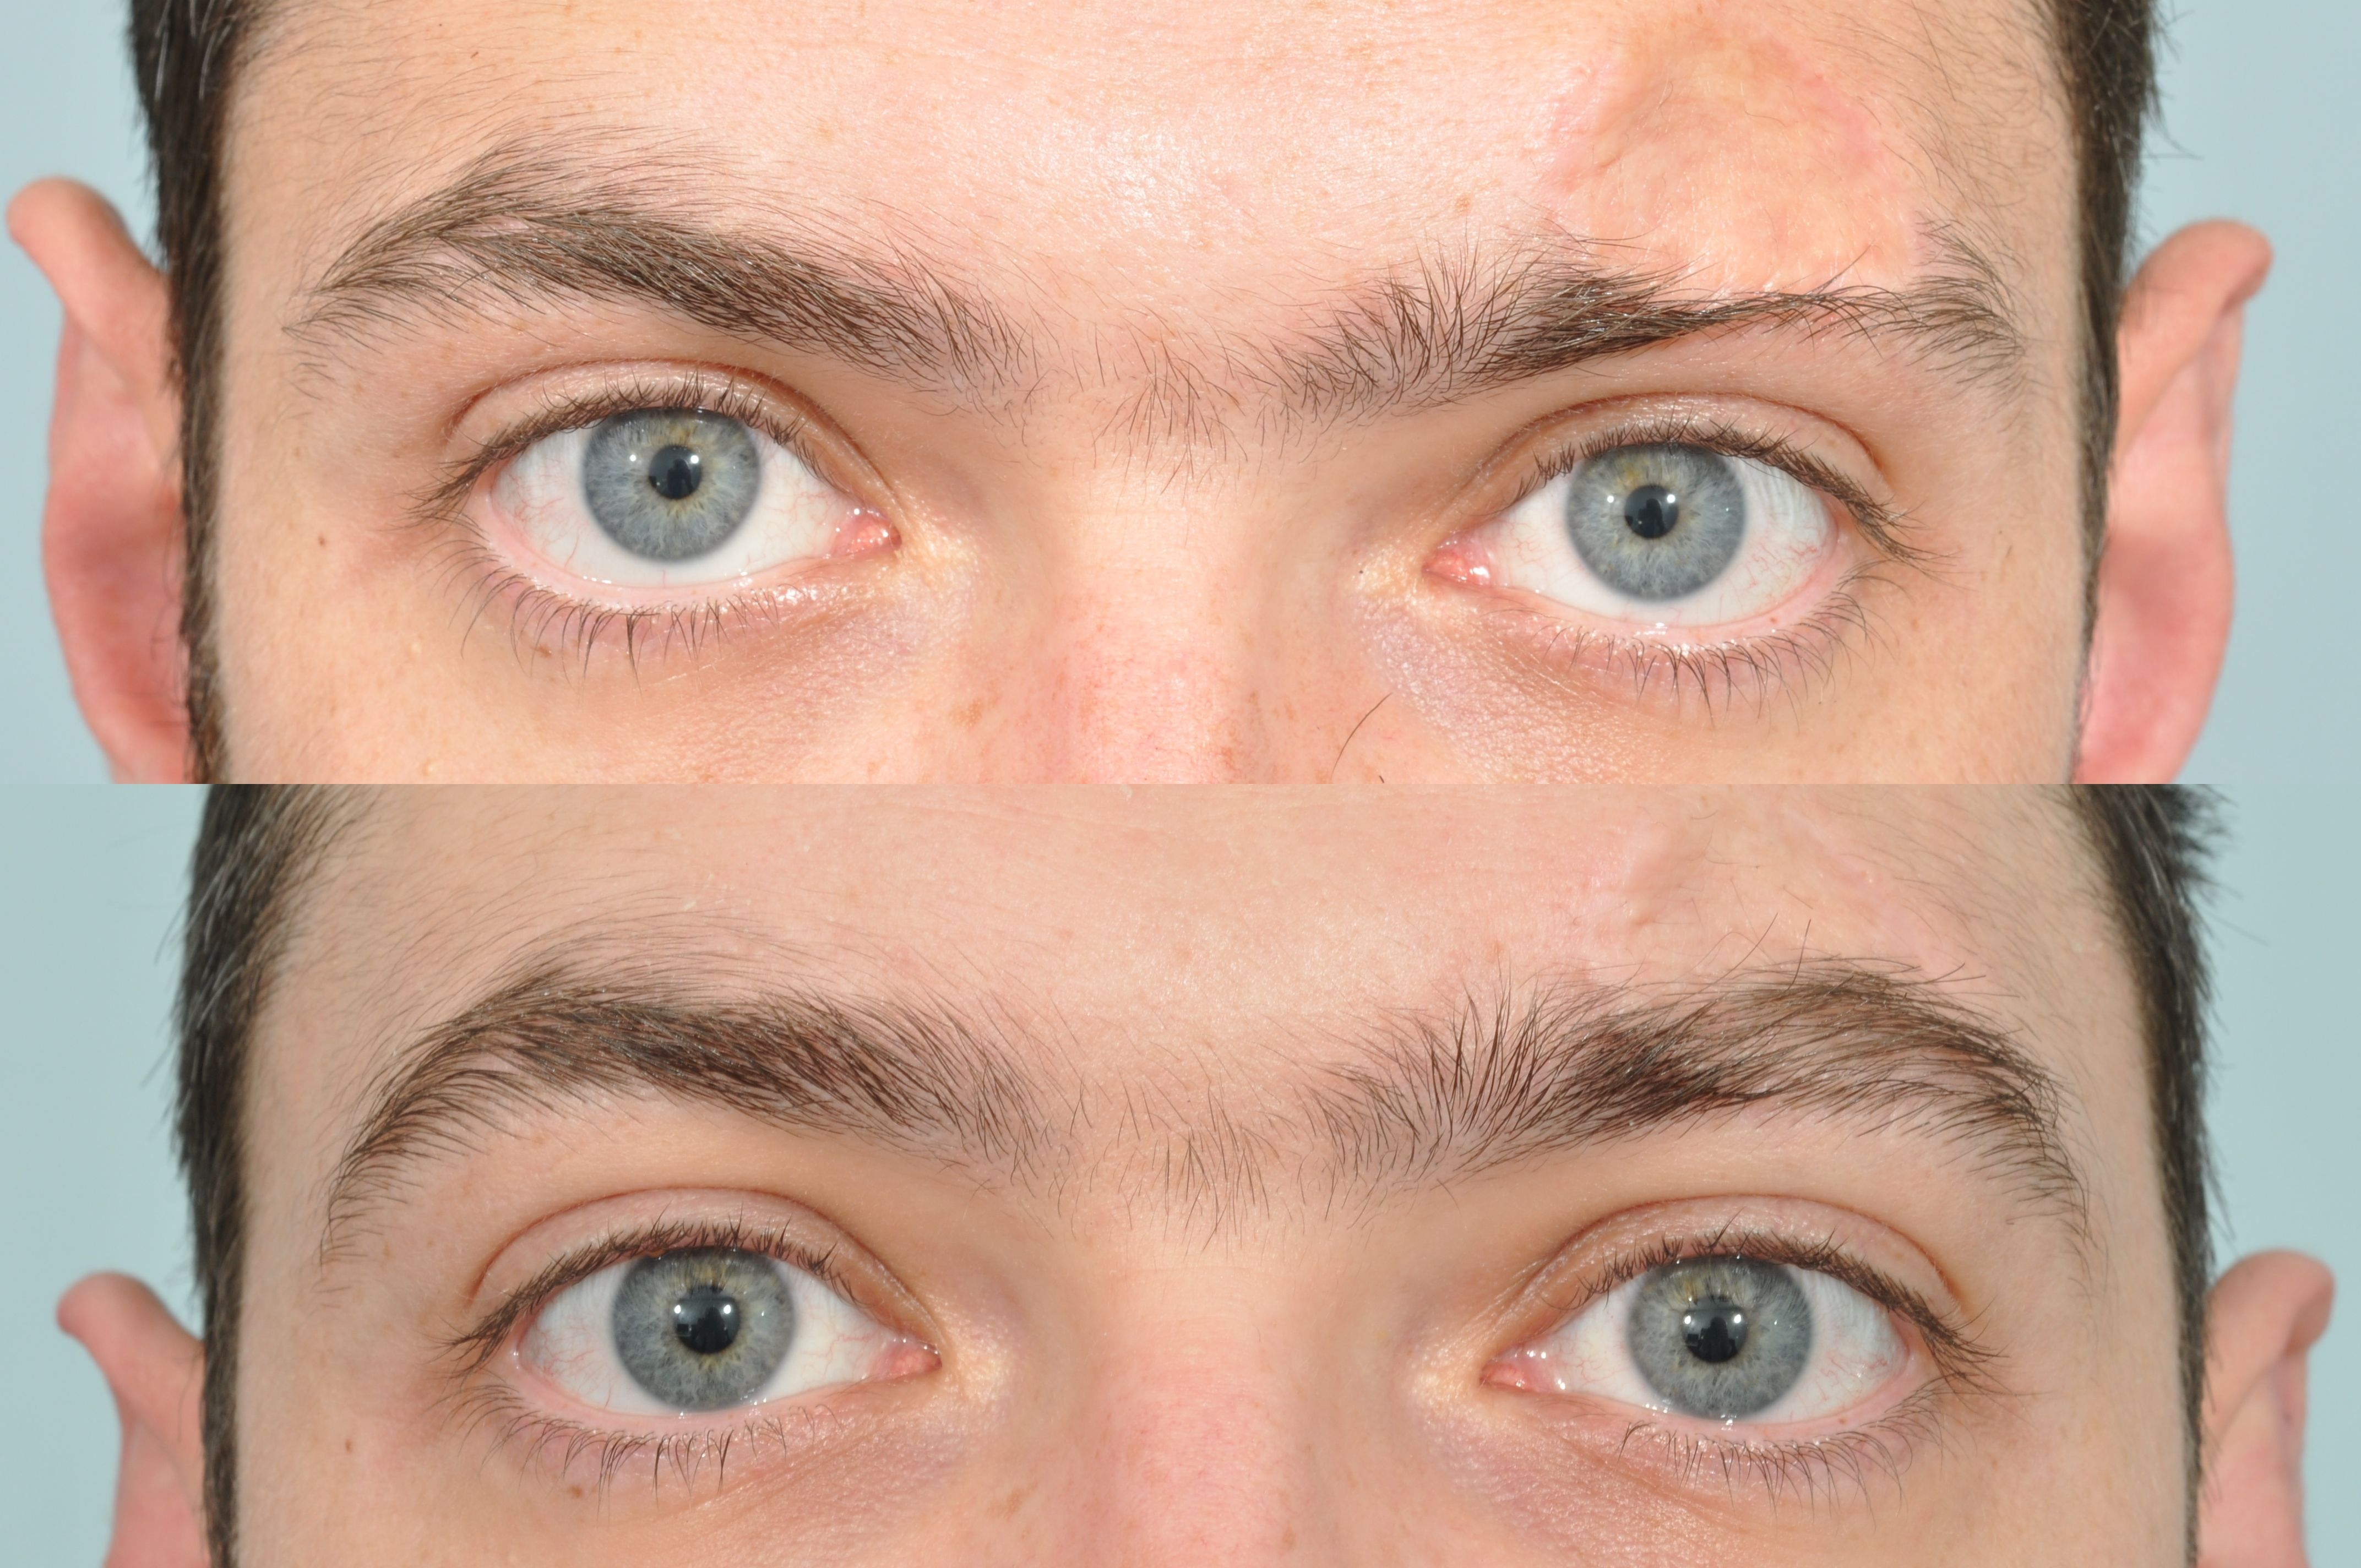 Eyebrow Transplantation Is A Surgical Procedure Intended To